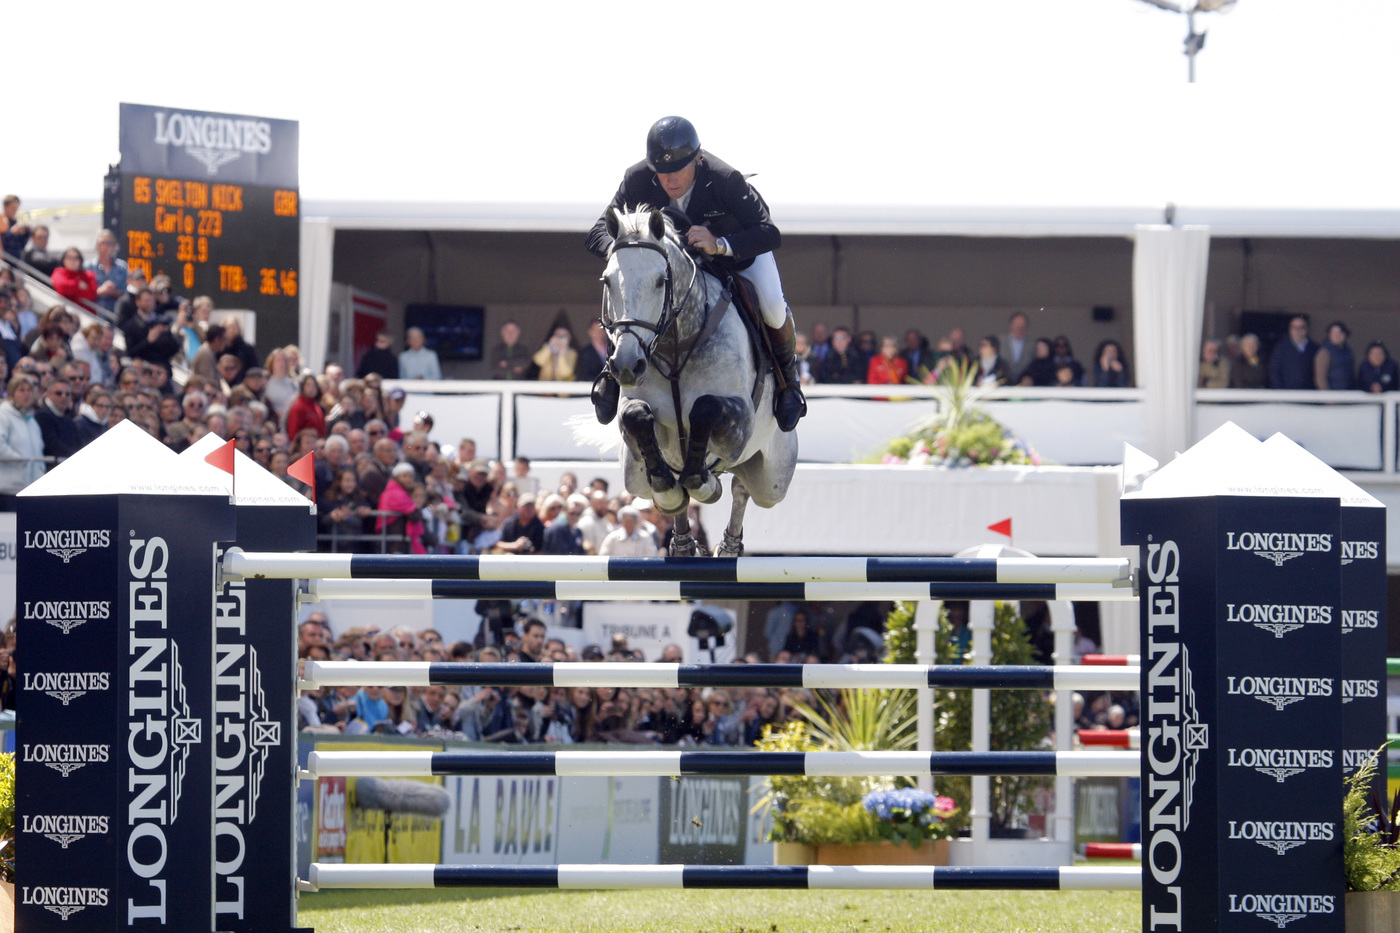 Longines Show Jumping Event: Nations Cup – Longines Press Award for Elegance: Intermediate ranking 1